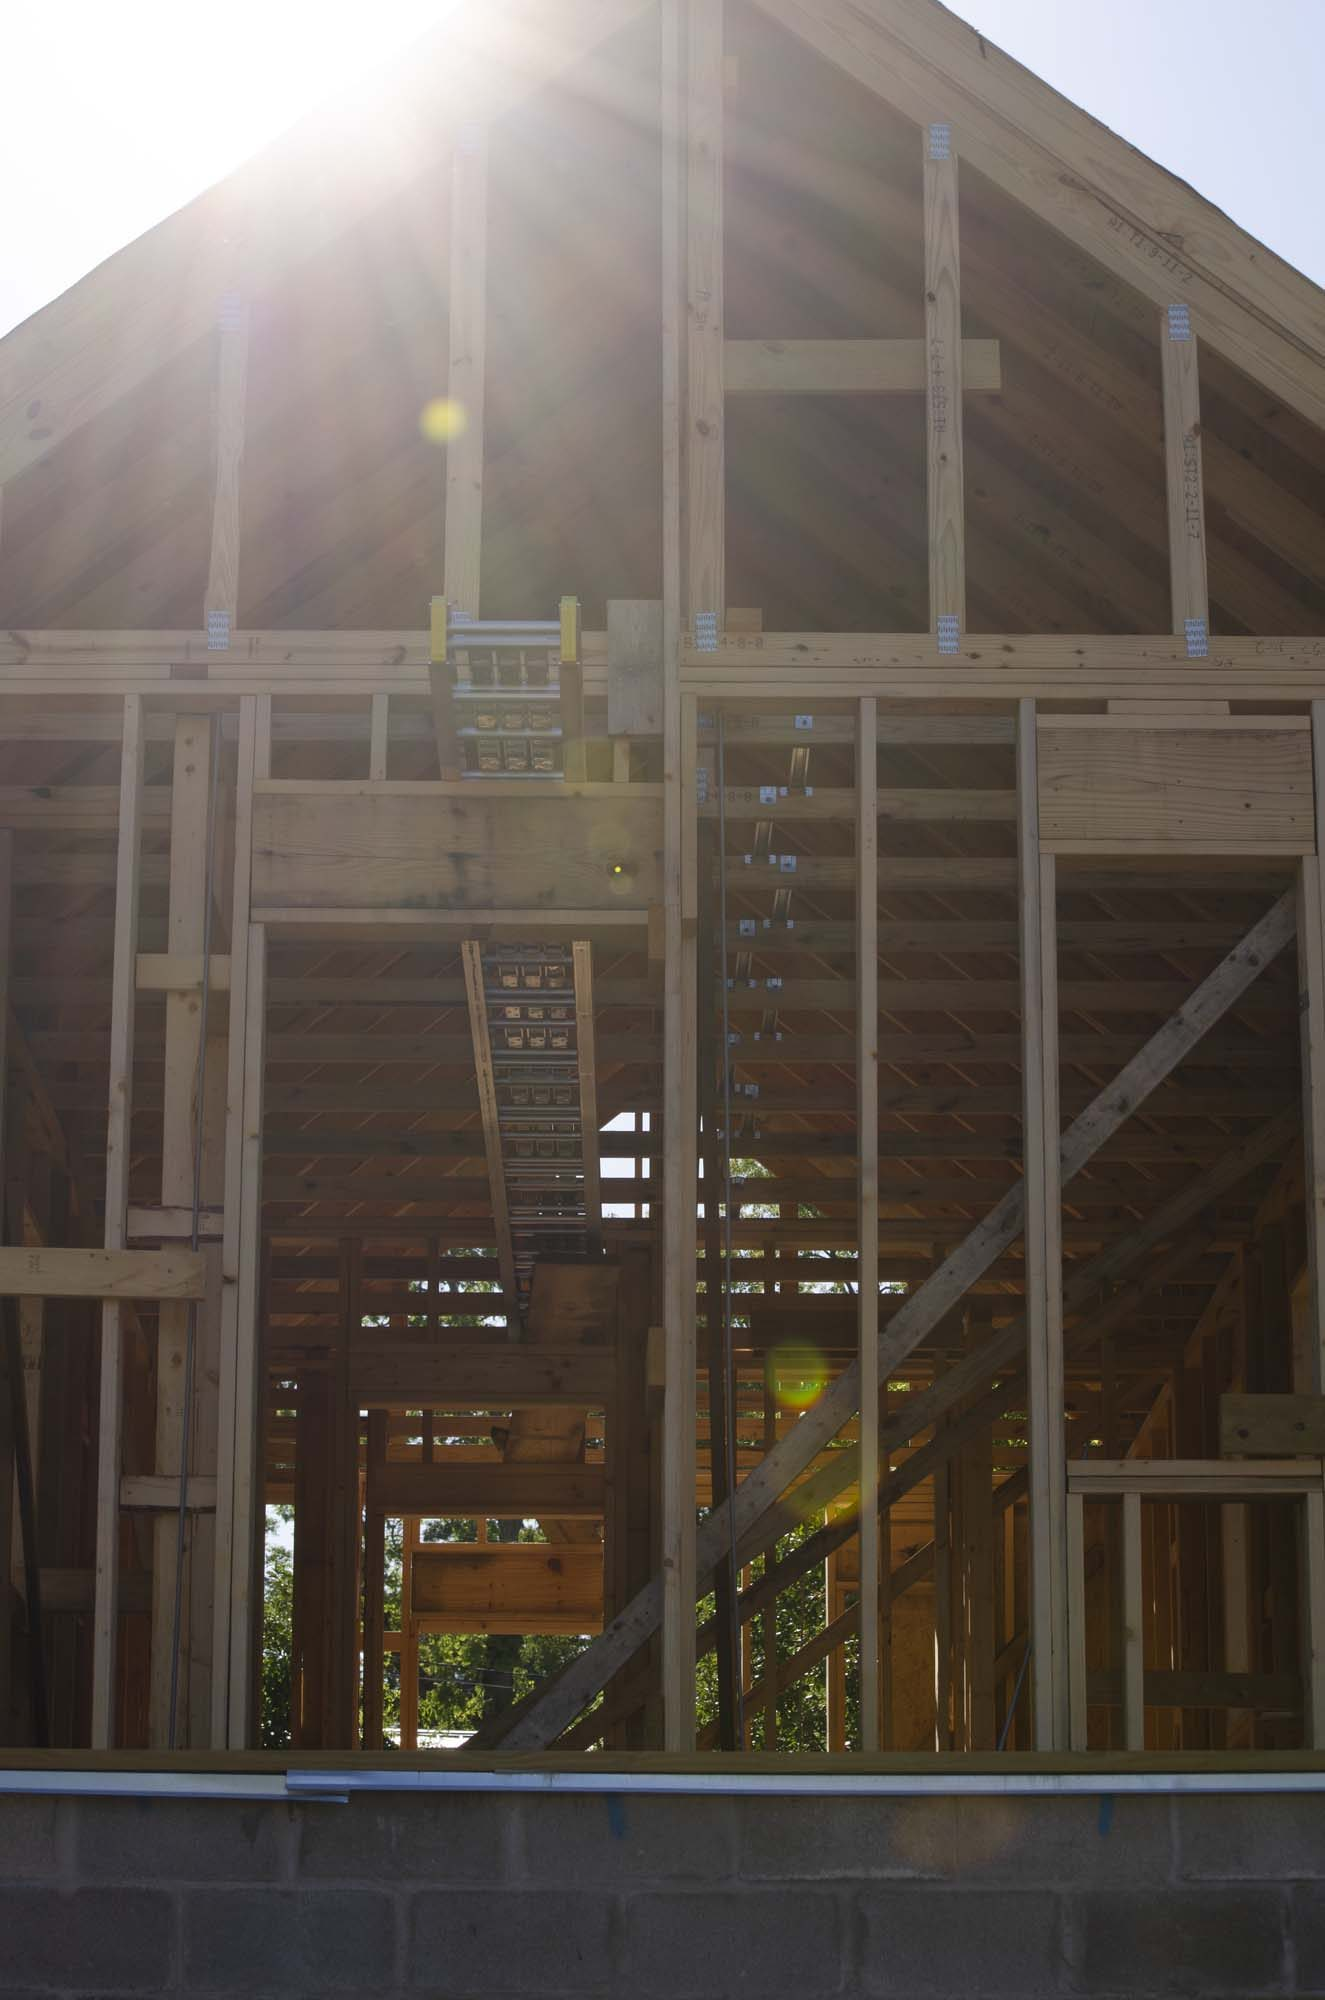 A photograph of a home under construction in Marianna, Florida. The image shows the sun streaming over the roofline of the wood frame and block foundation of an unfinished home. The Dream Builders monthly giving program provides a foundation for building homes like this for families in need.